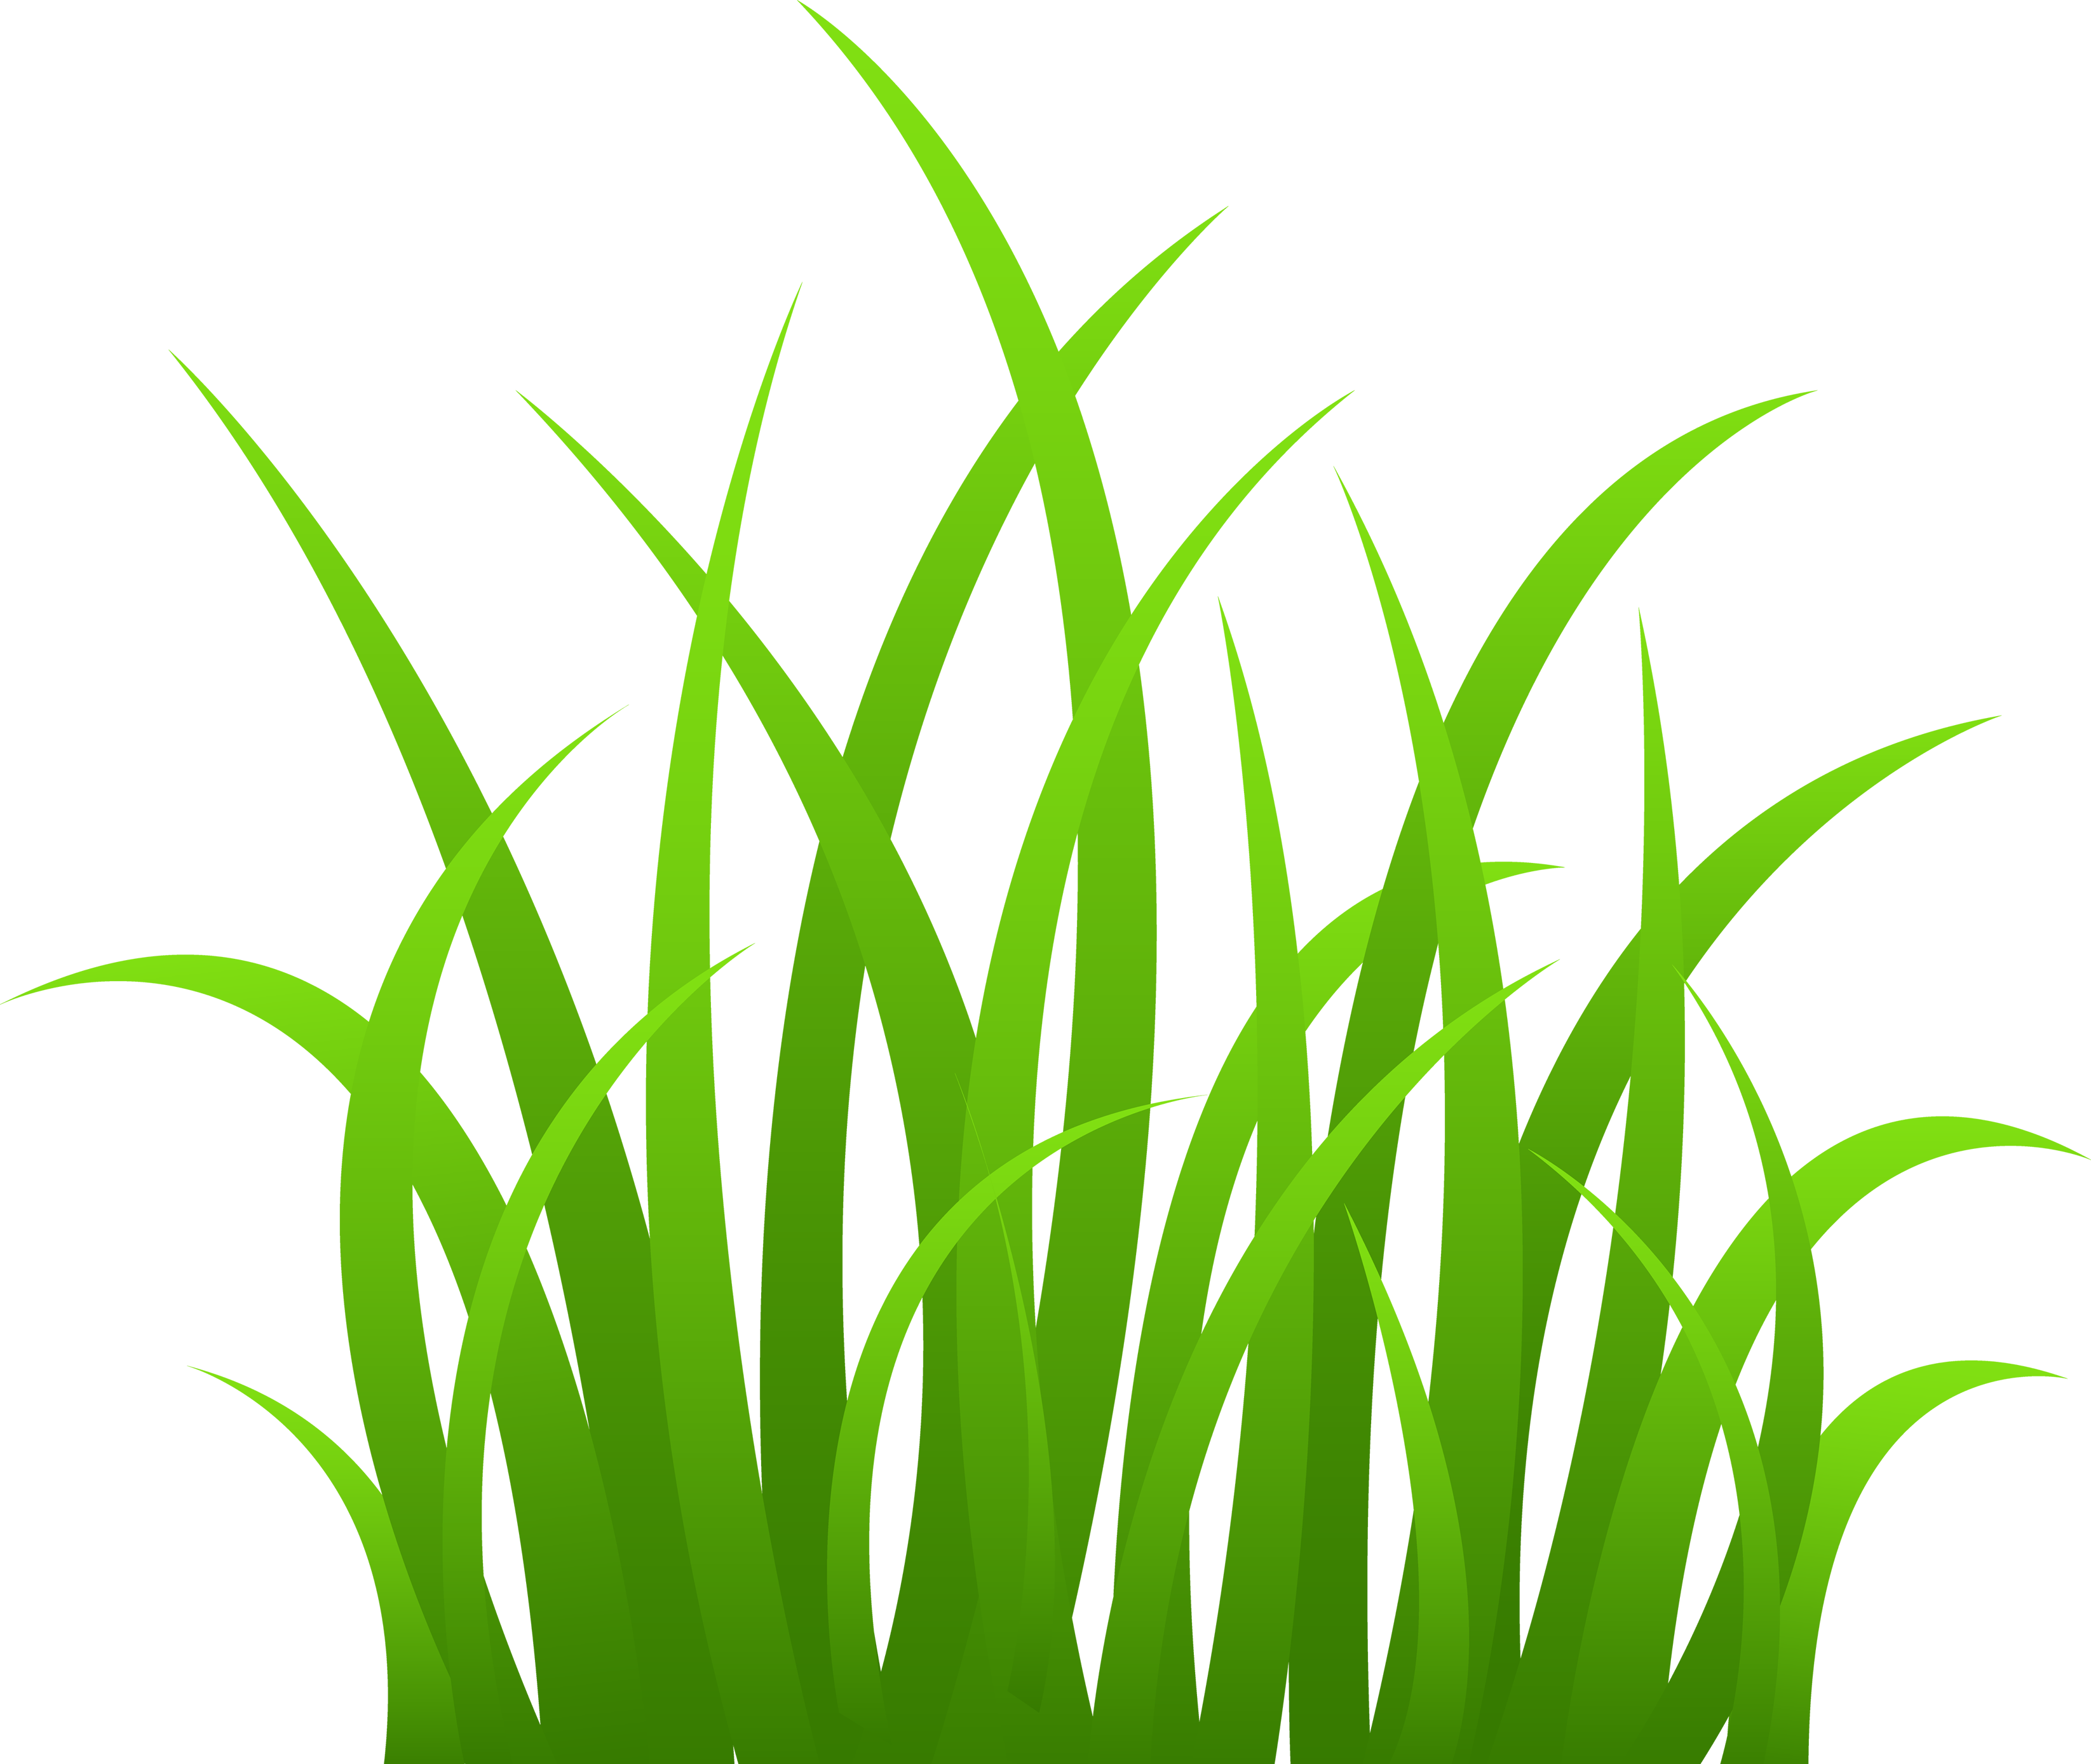 Grass image png. Images pictures green picture